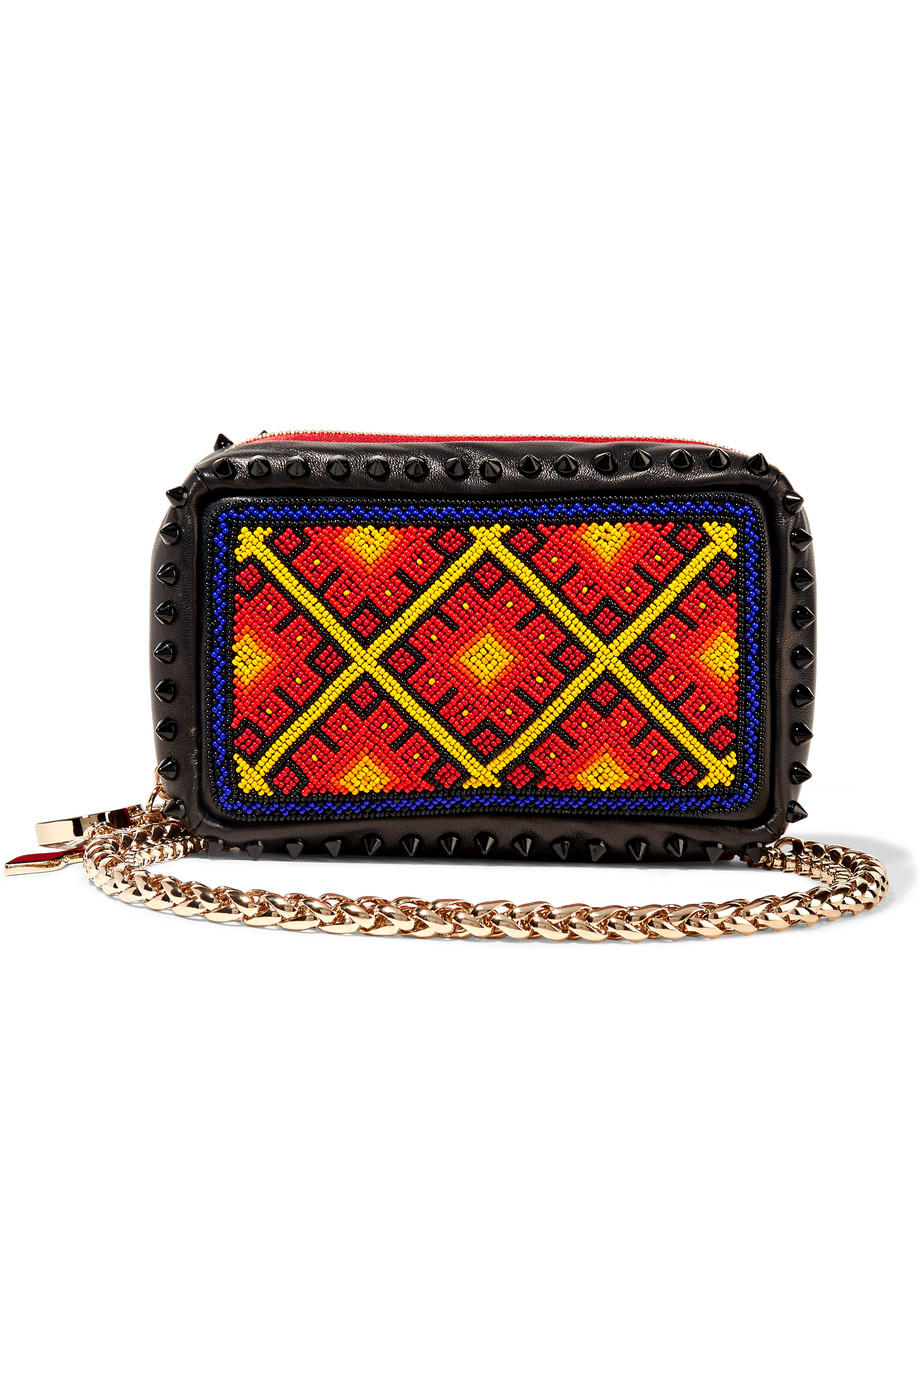 Christian Louboutin Piloutin Embellished Leather Clutch, Black/Red, Women's